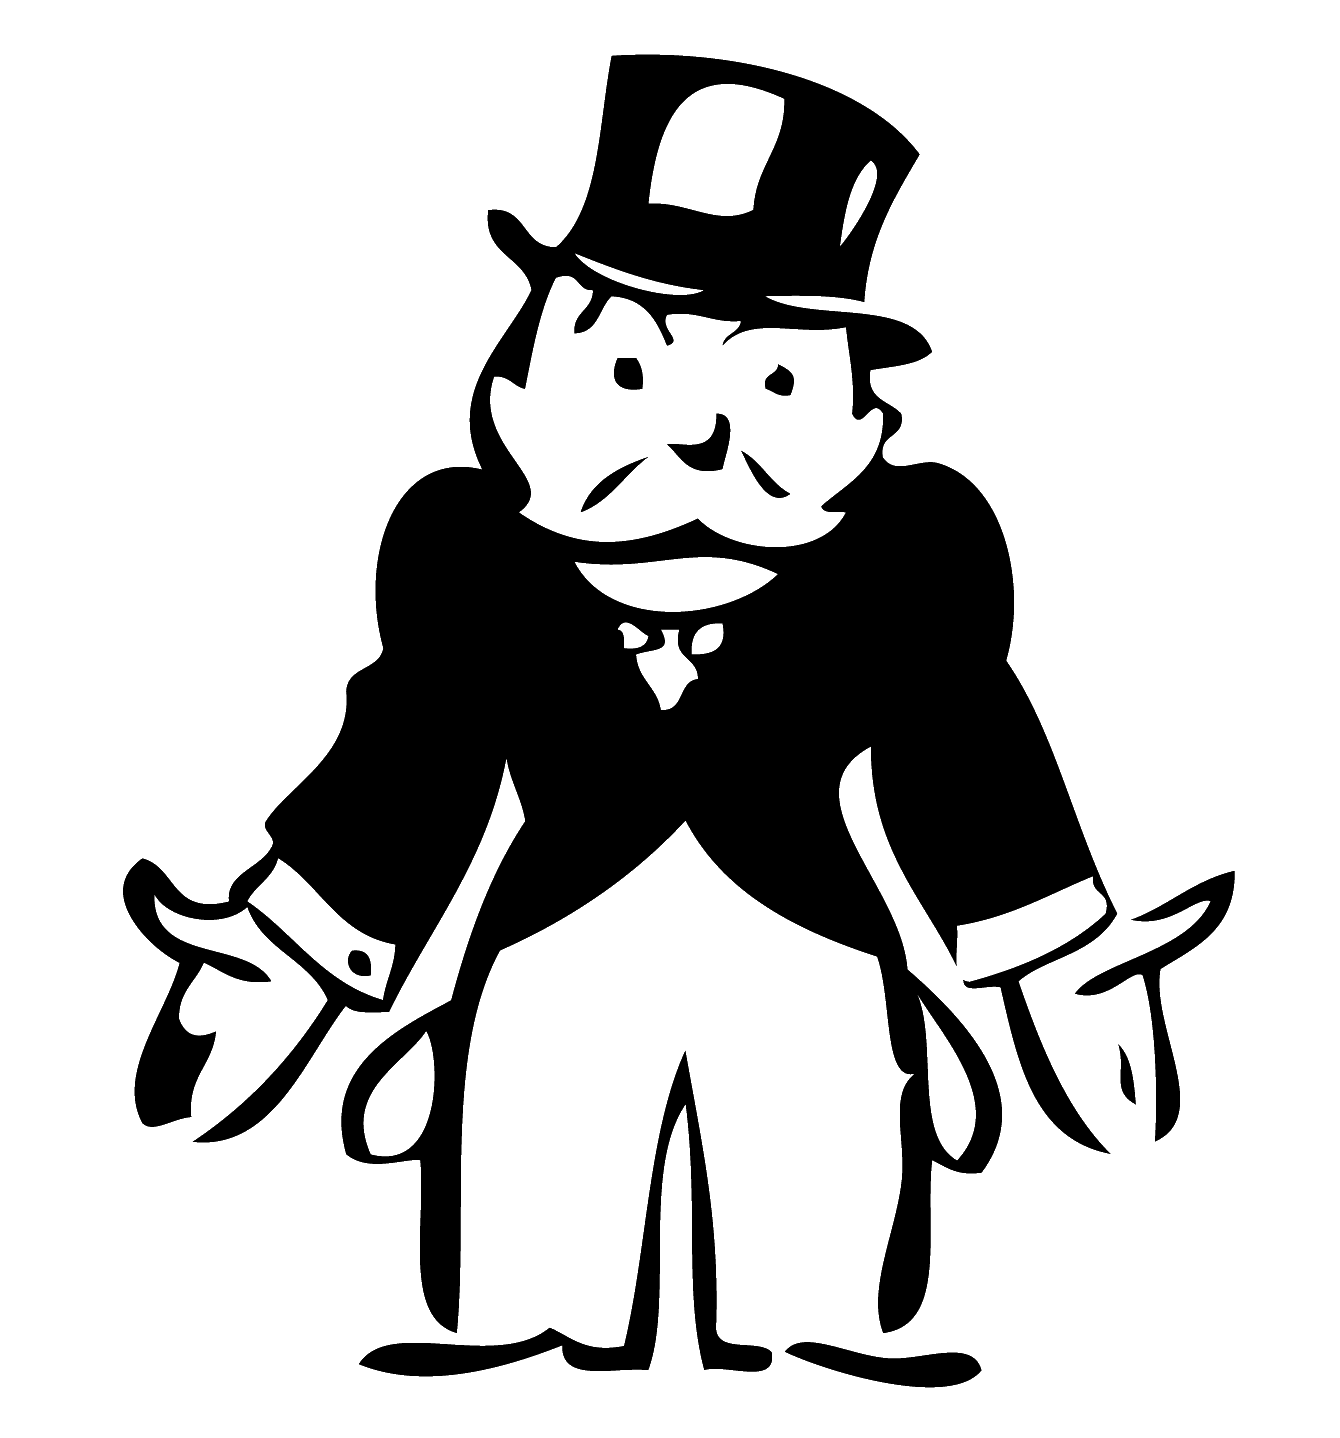 The Monopoly Problem Personal Financial Literacy Monopoly Man Financial Literacy